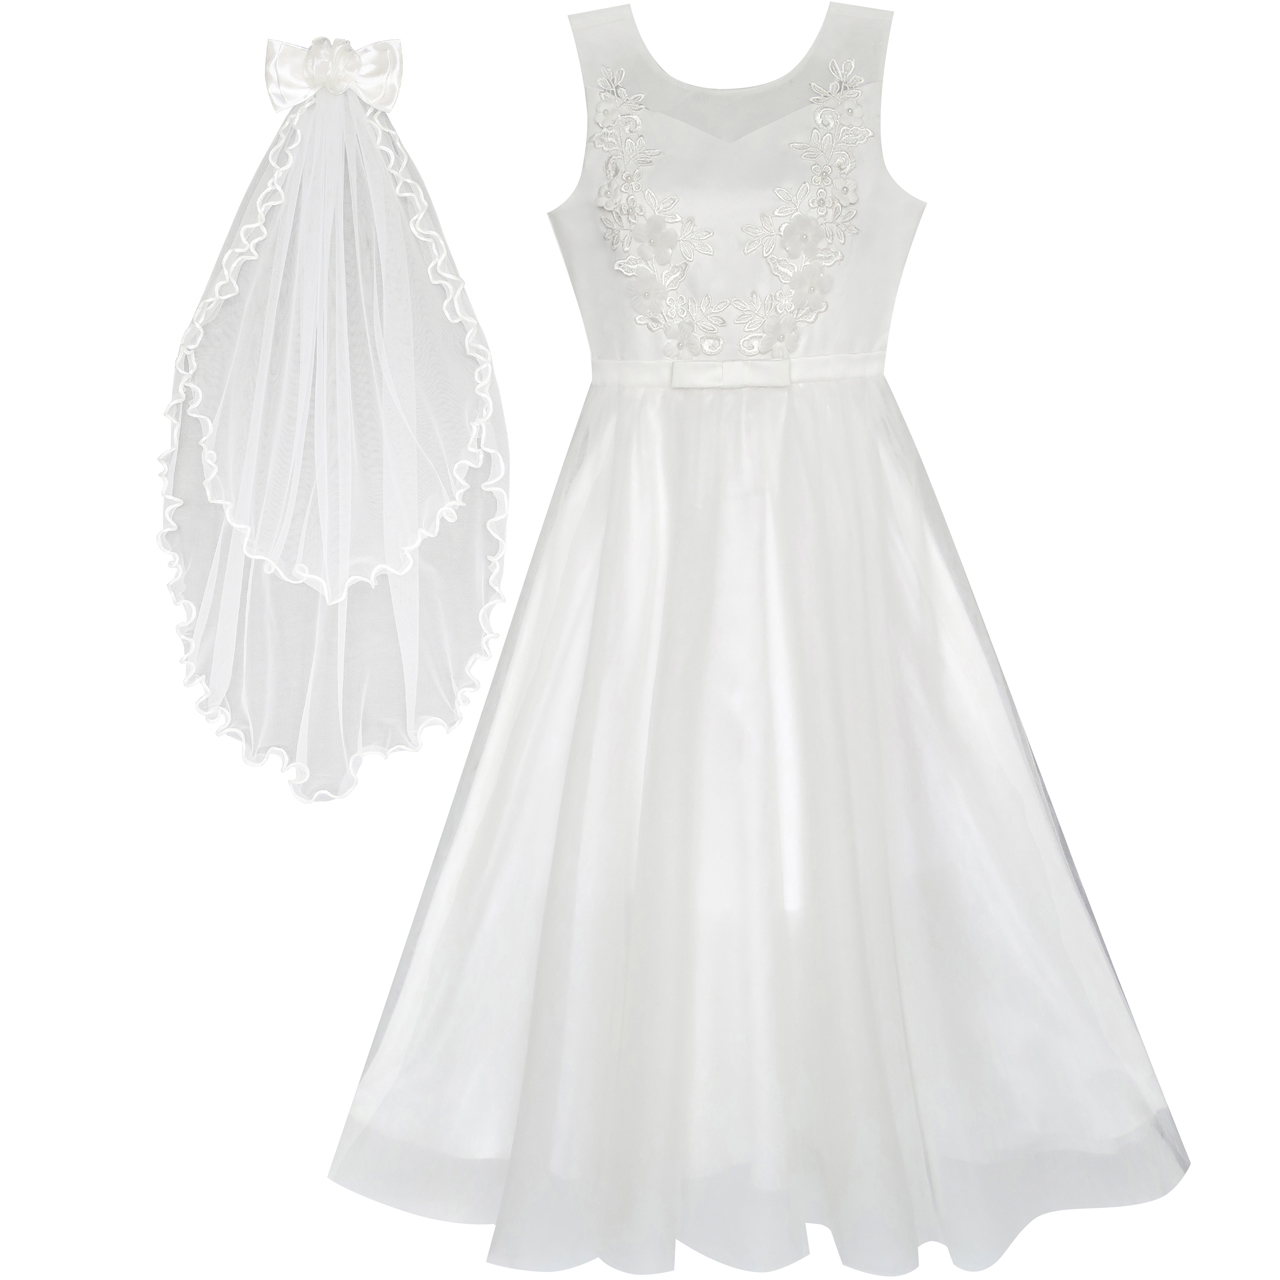 Wedding Dress White Vs Off White: Flower Girls Dress Off White Wedding Veil First Communion